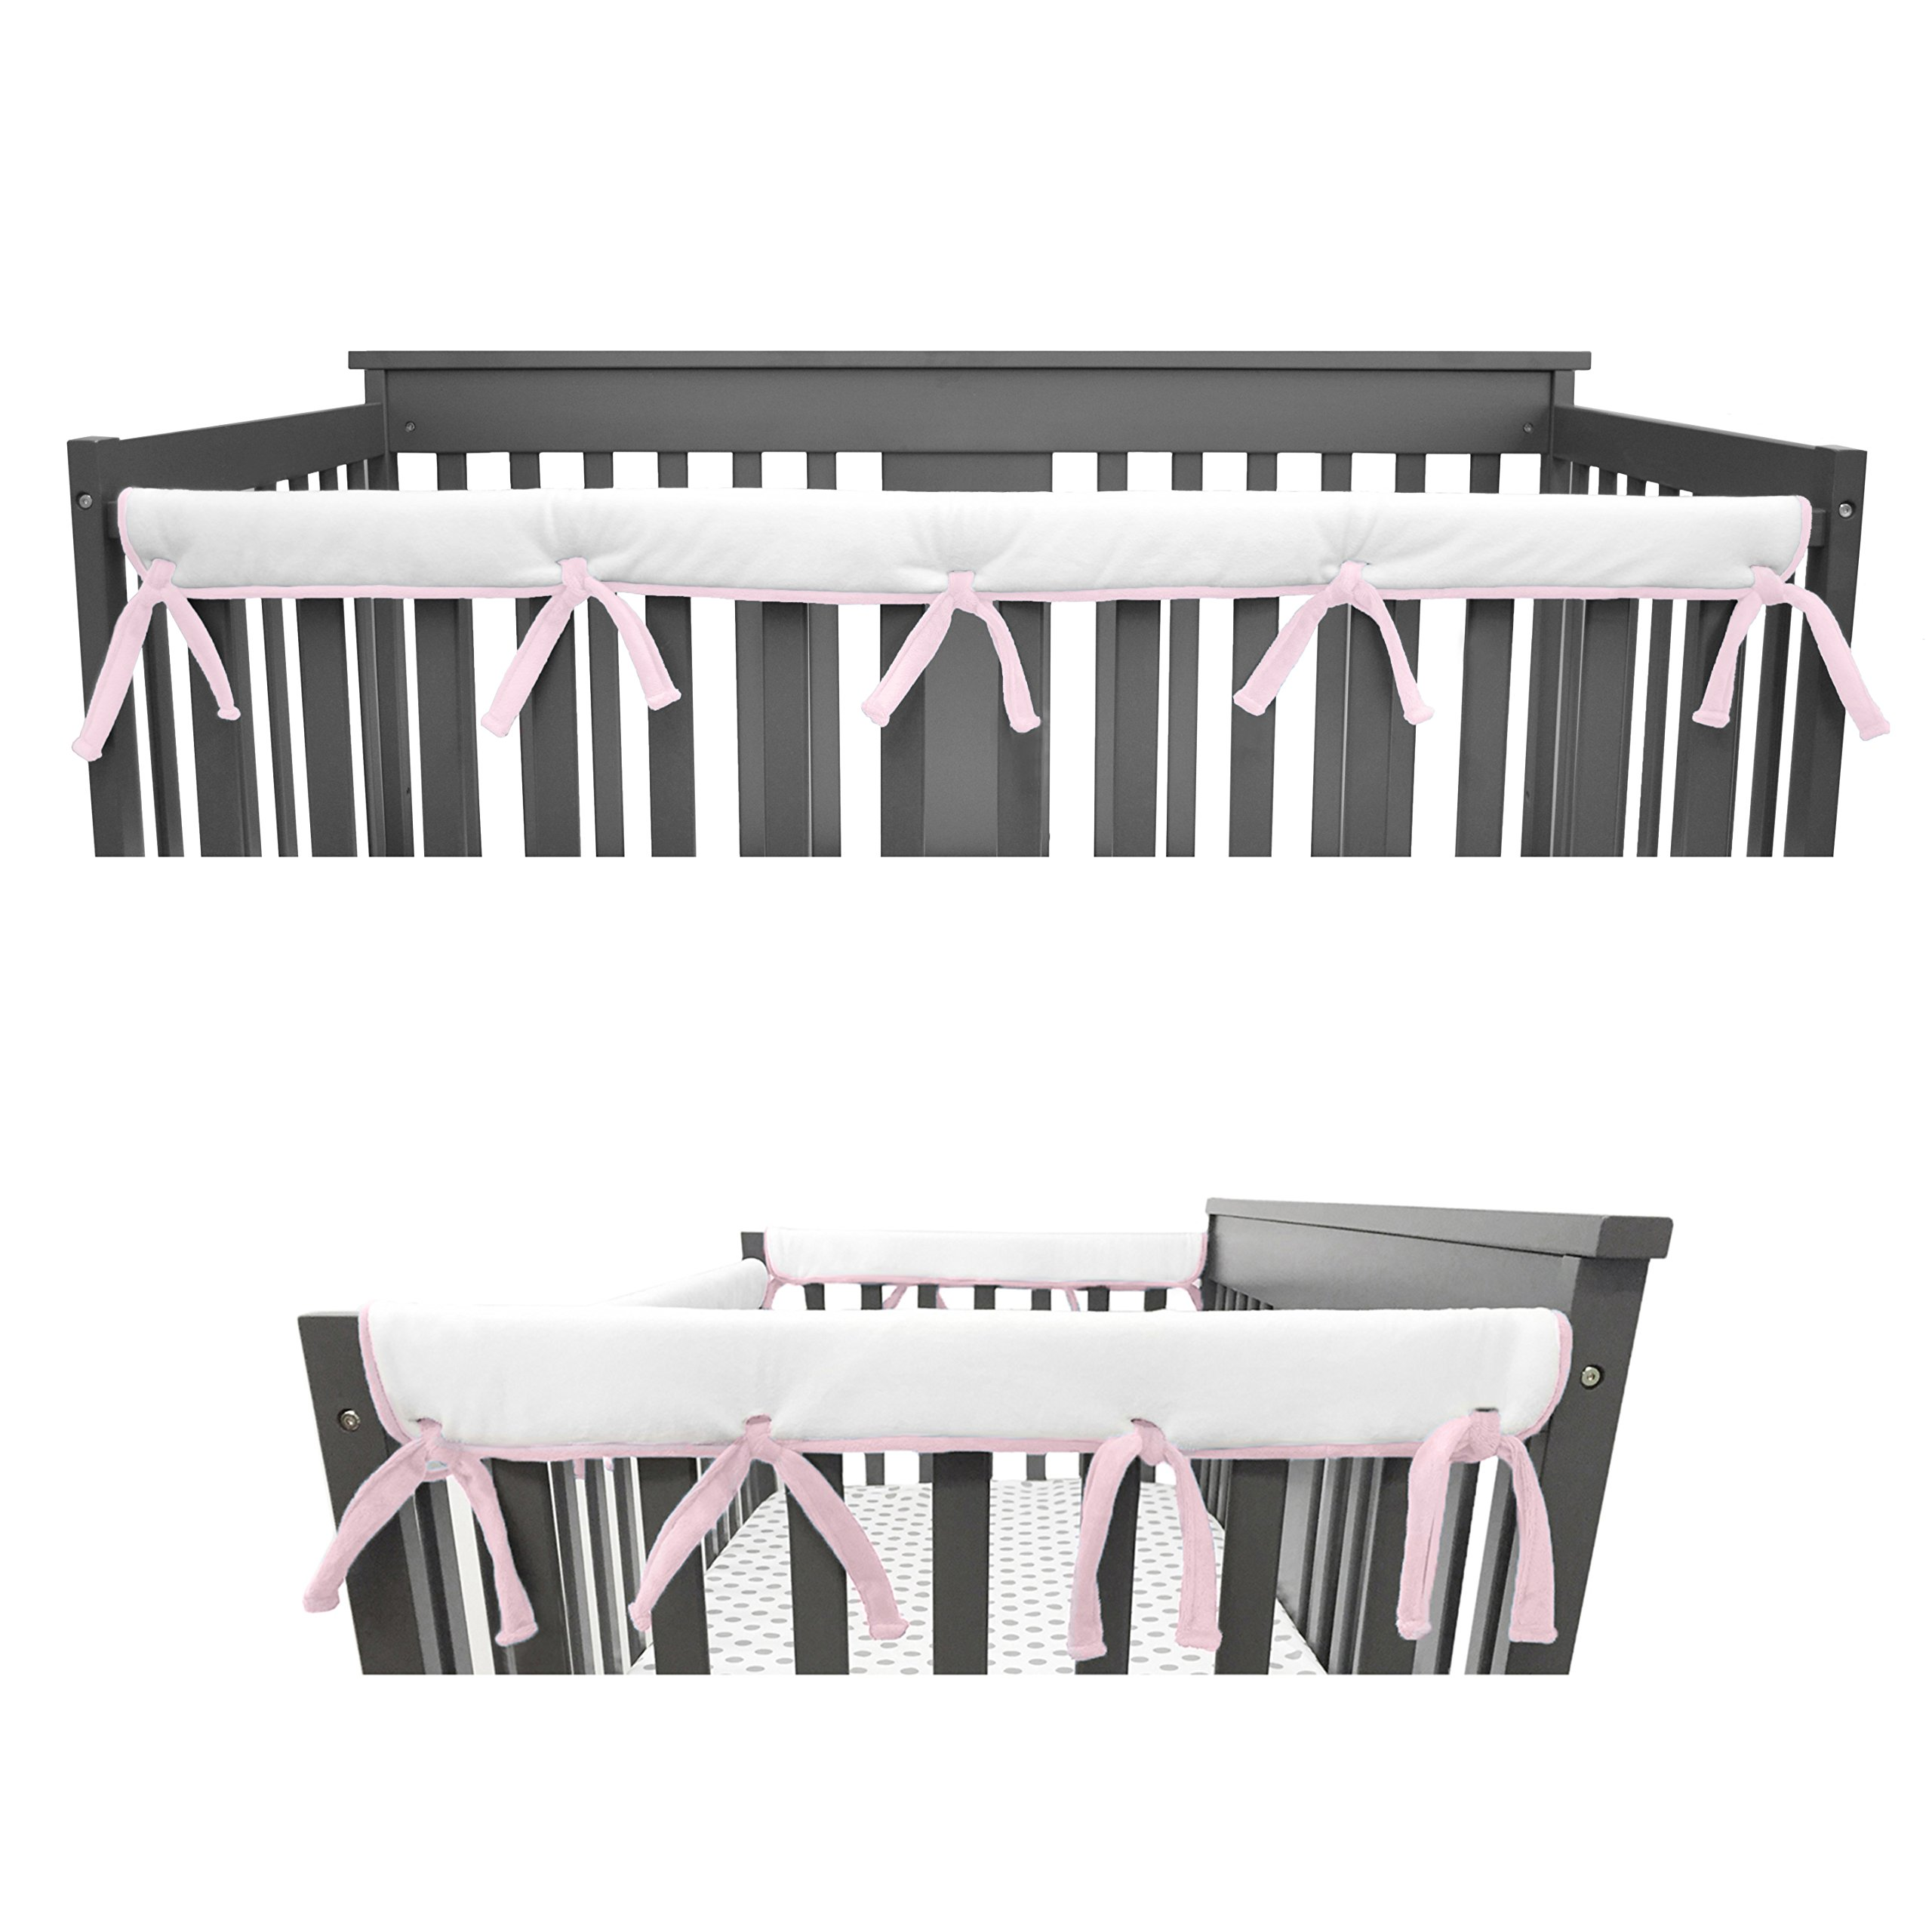 American Baby Company Heavenly Soft Narrow Reversible Crib Cover Set for 1 Long Rail & 2 Side Rails, Pink/White, Measuring up to 4'' Folded